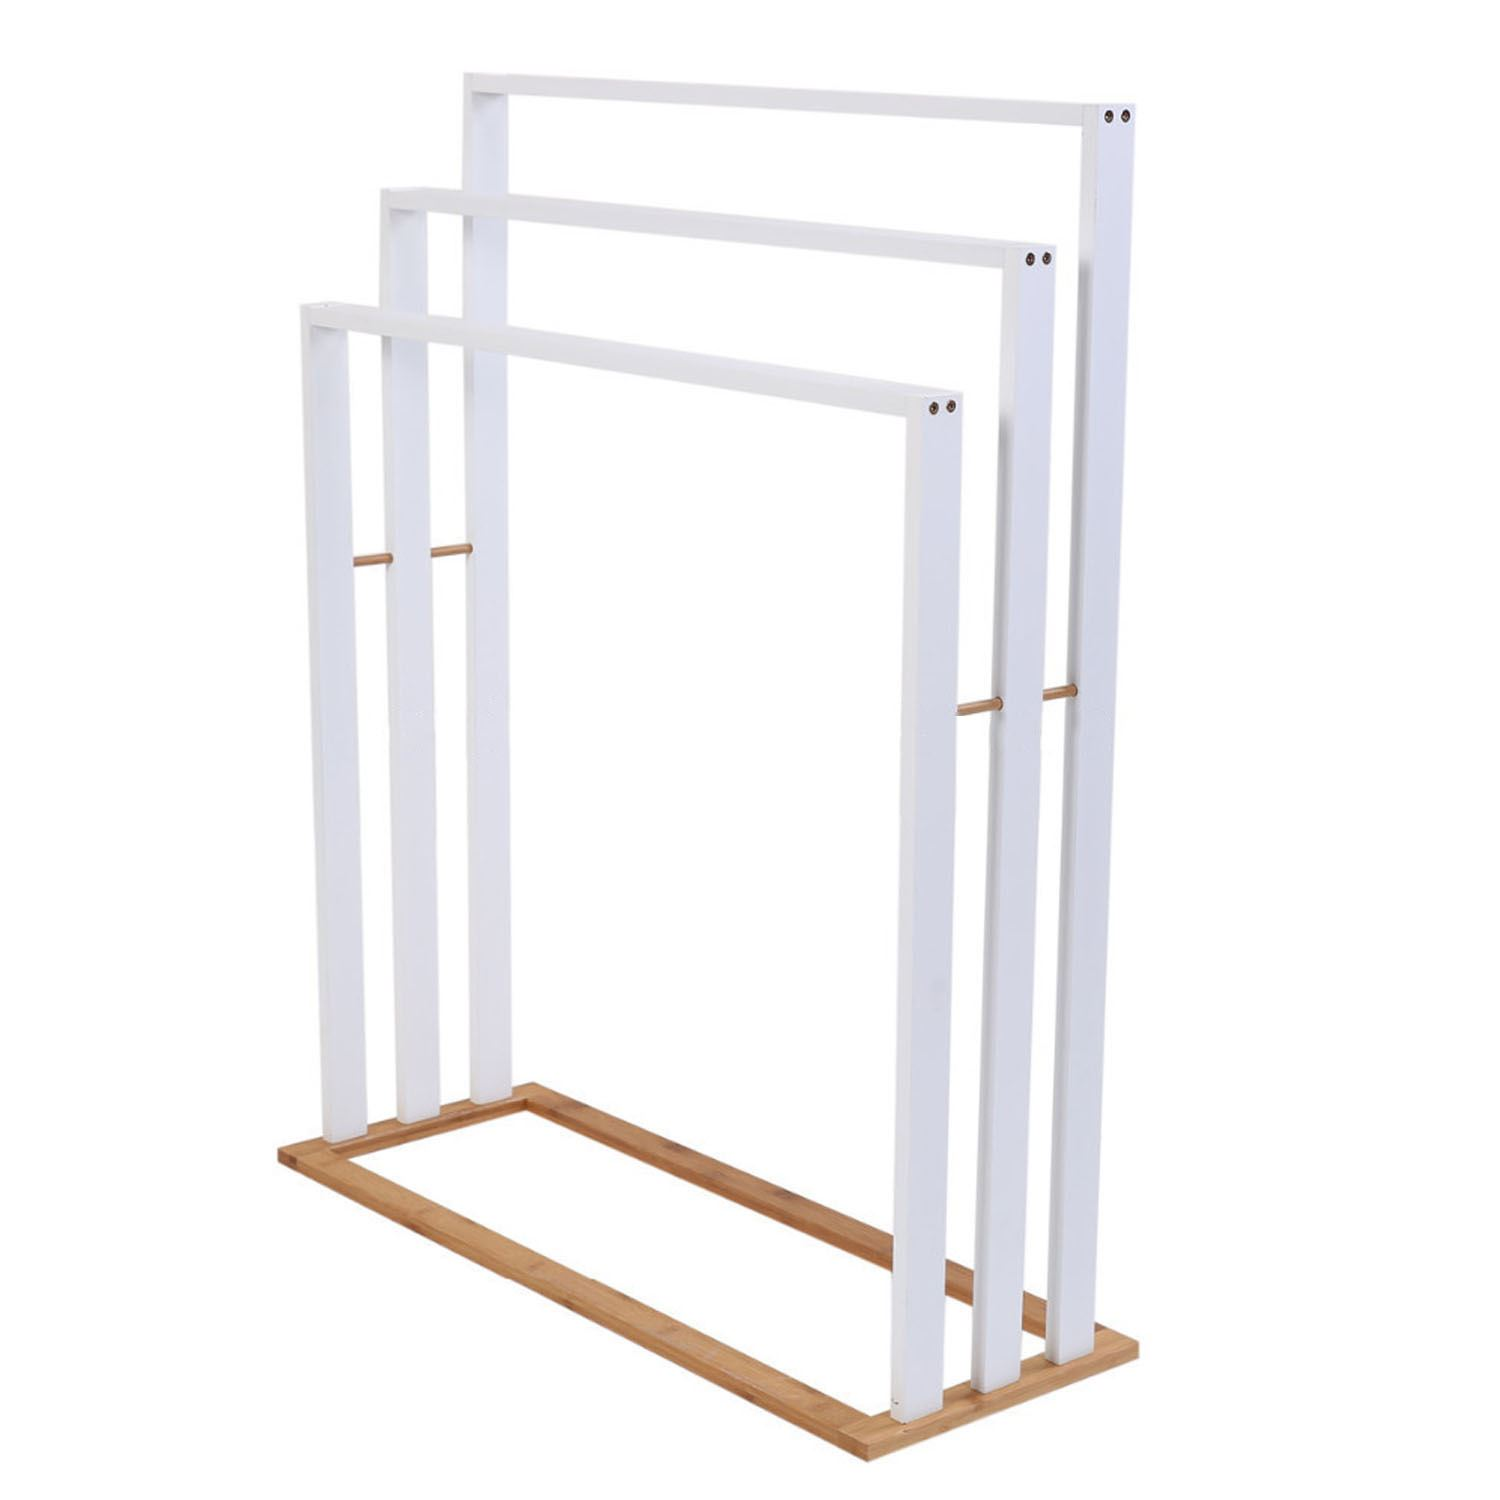 White Three 3 Tier Towel Holder Free Standing Floor Wooden Bathroom Rail Rack Ebay